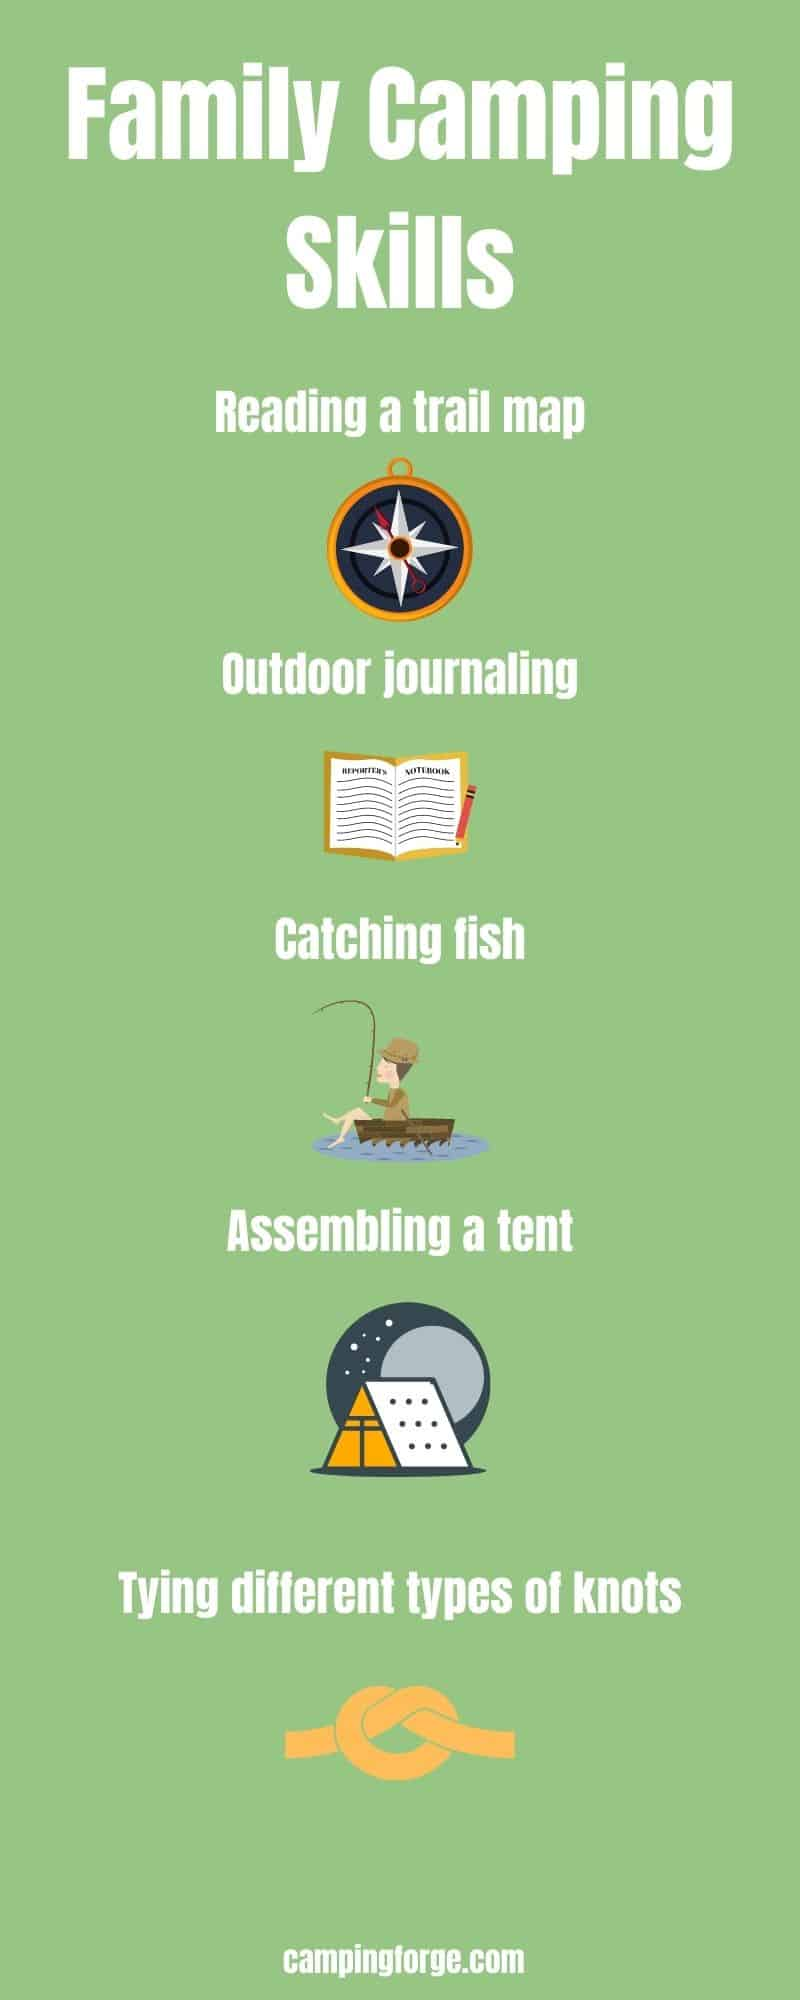 An infographic listing the essential skills you can learn while camping with your family